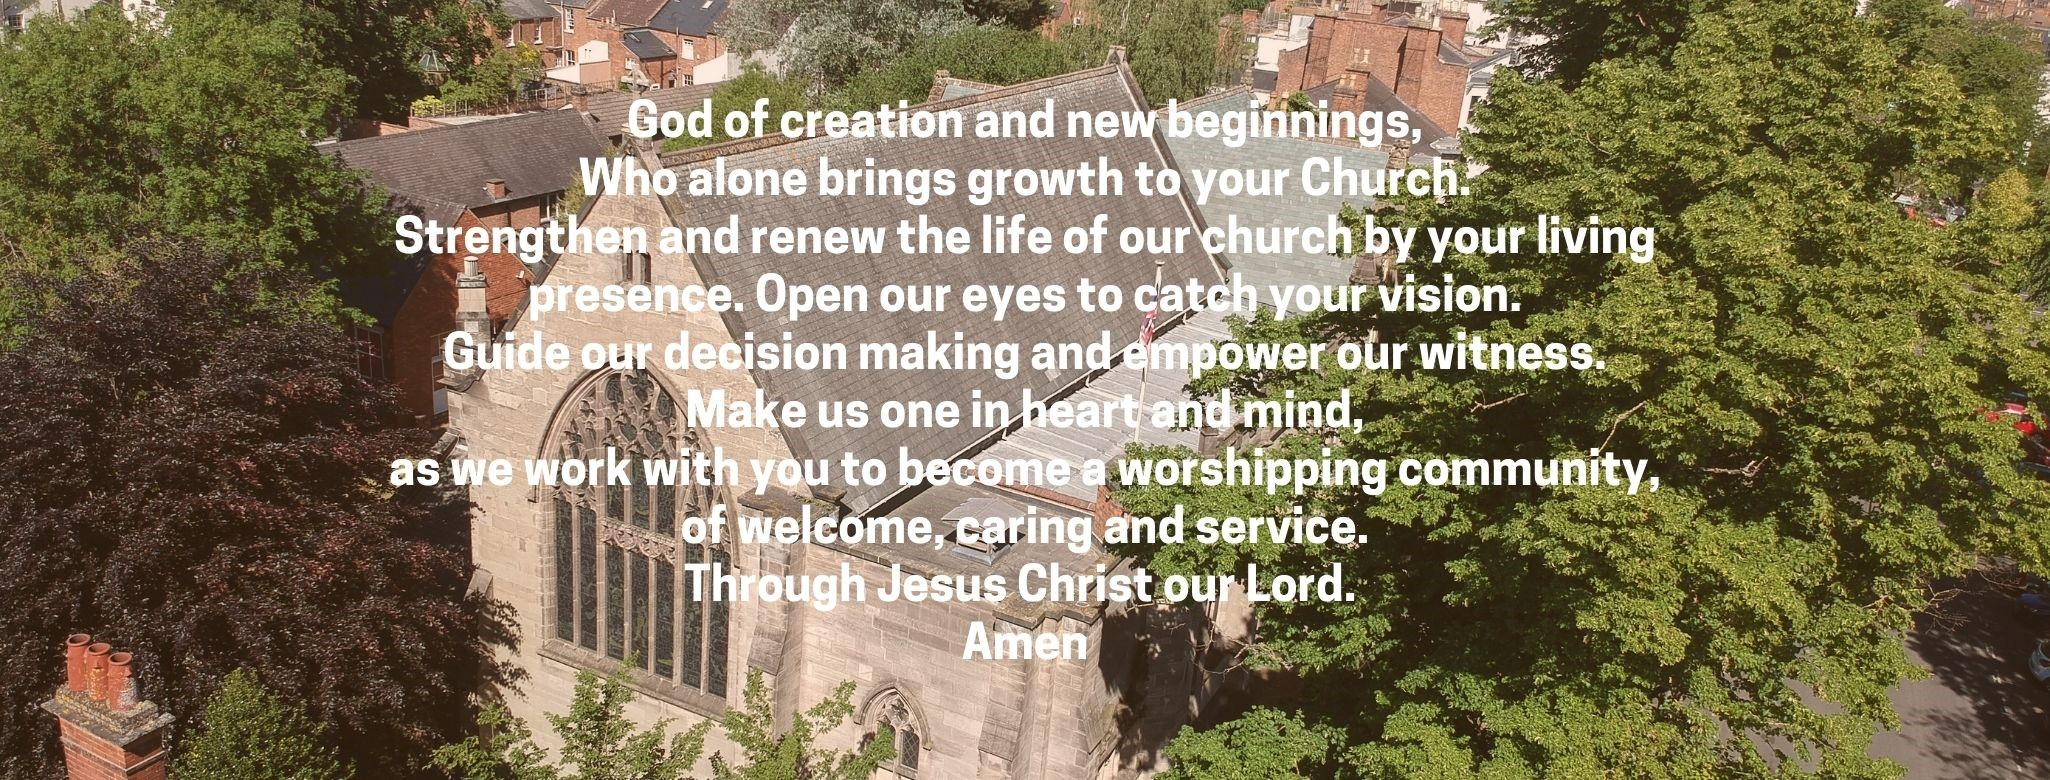 HT parish prayer 10 10 20